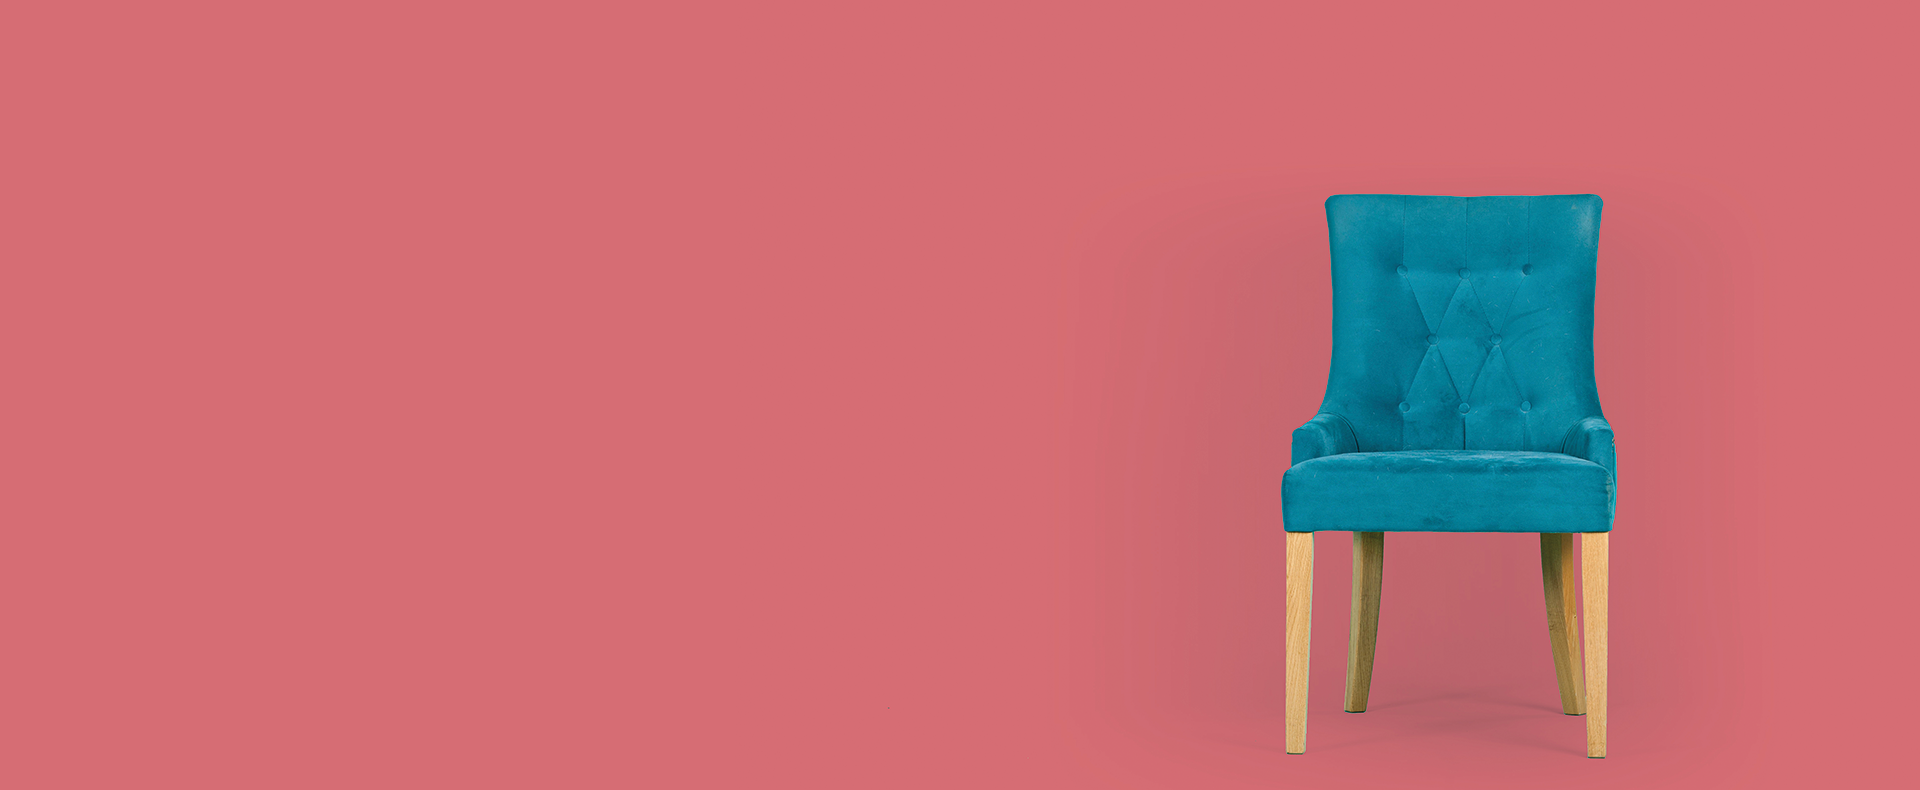 Chair - Q4 - 1920x790.png